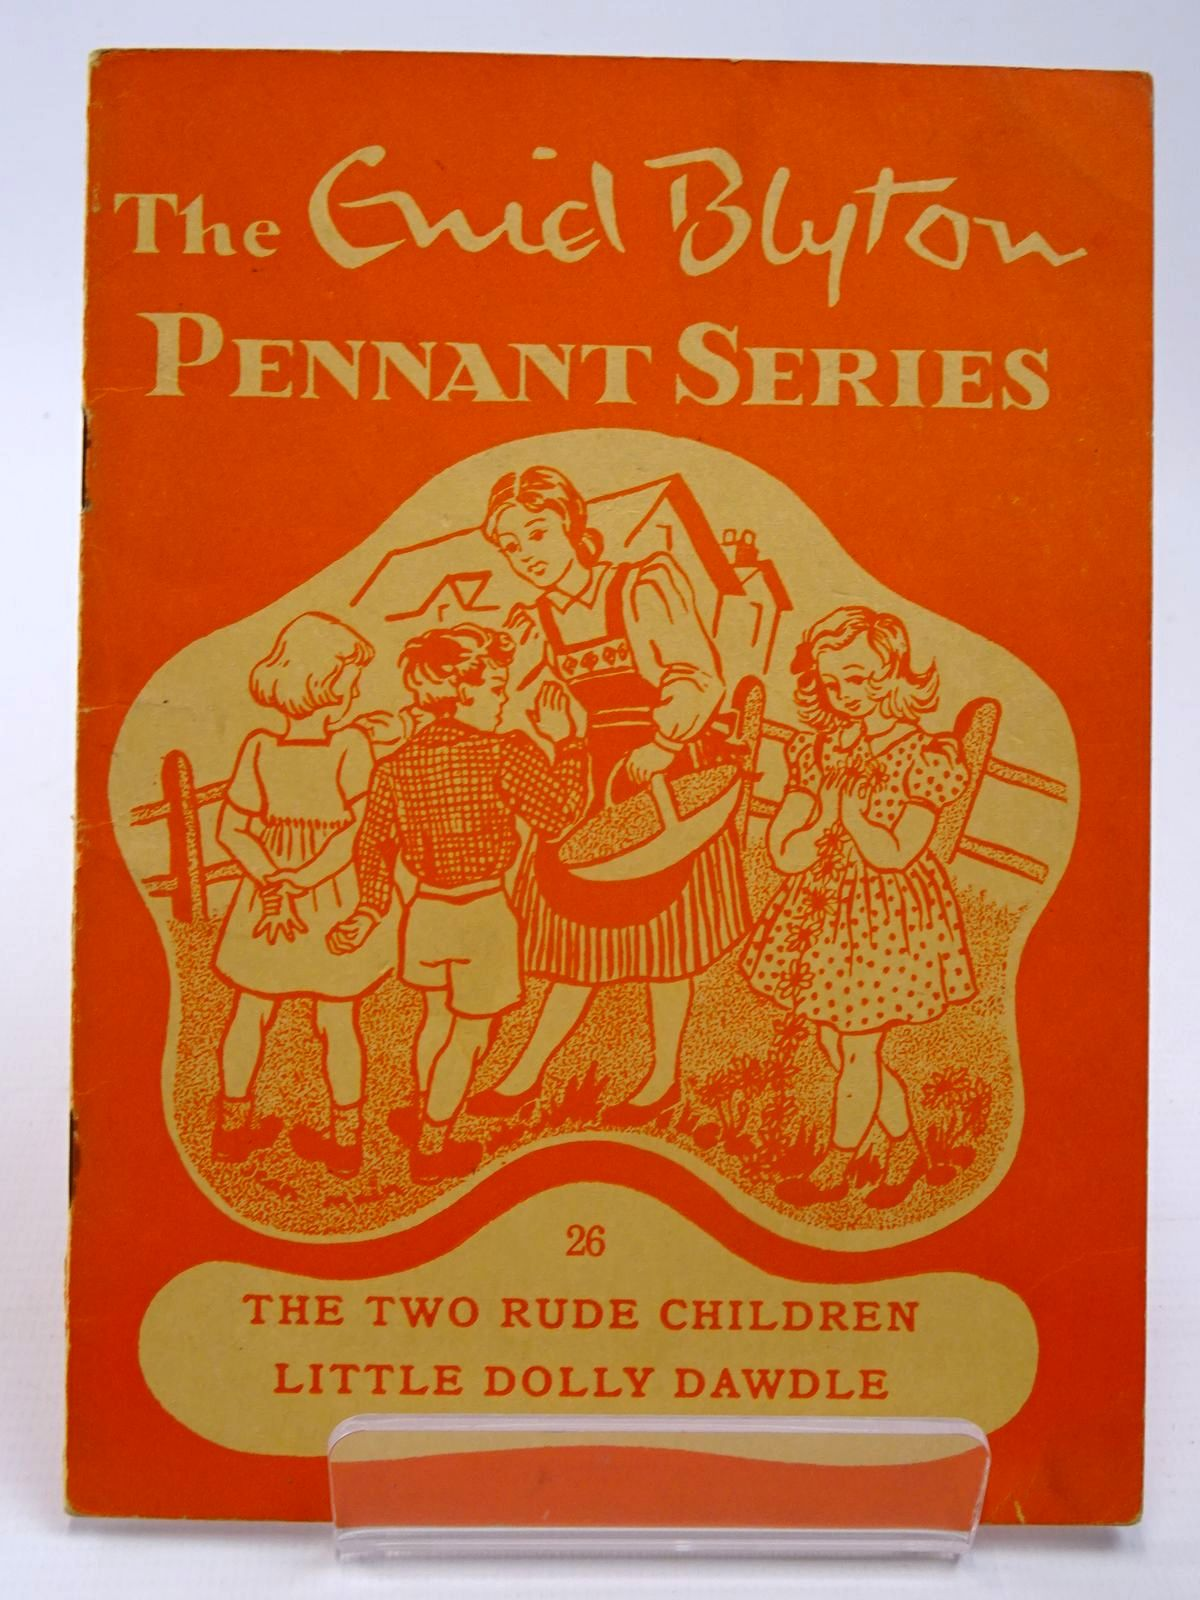 Photo of THE ENID BLYTON PENNANT SERIES No. 26 THE TWO RUDE CHILDREN / LITTLE DOLLY DAWDLE written by Blyton, Enid illustrated by Soper, Eileen<br />Main, Jean published by Macmillan & Co. Ltd. (STOCK CODE: 2130515)  for sale by Stella & Rose's Books